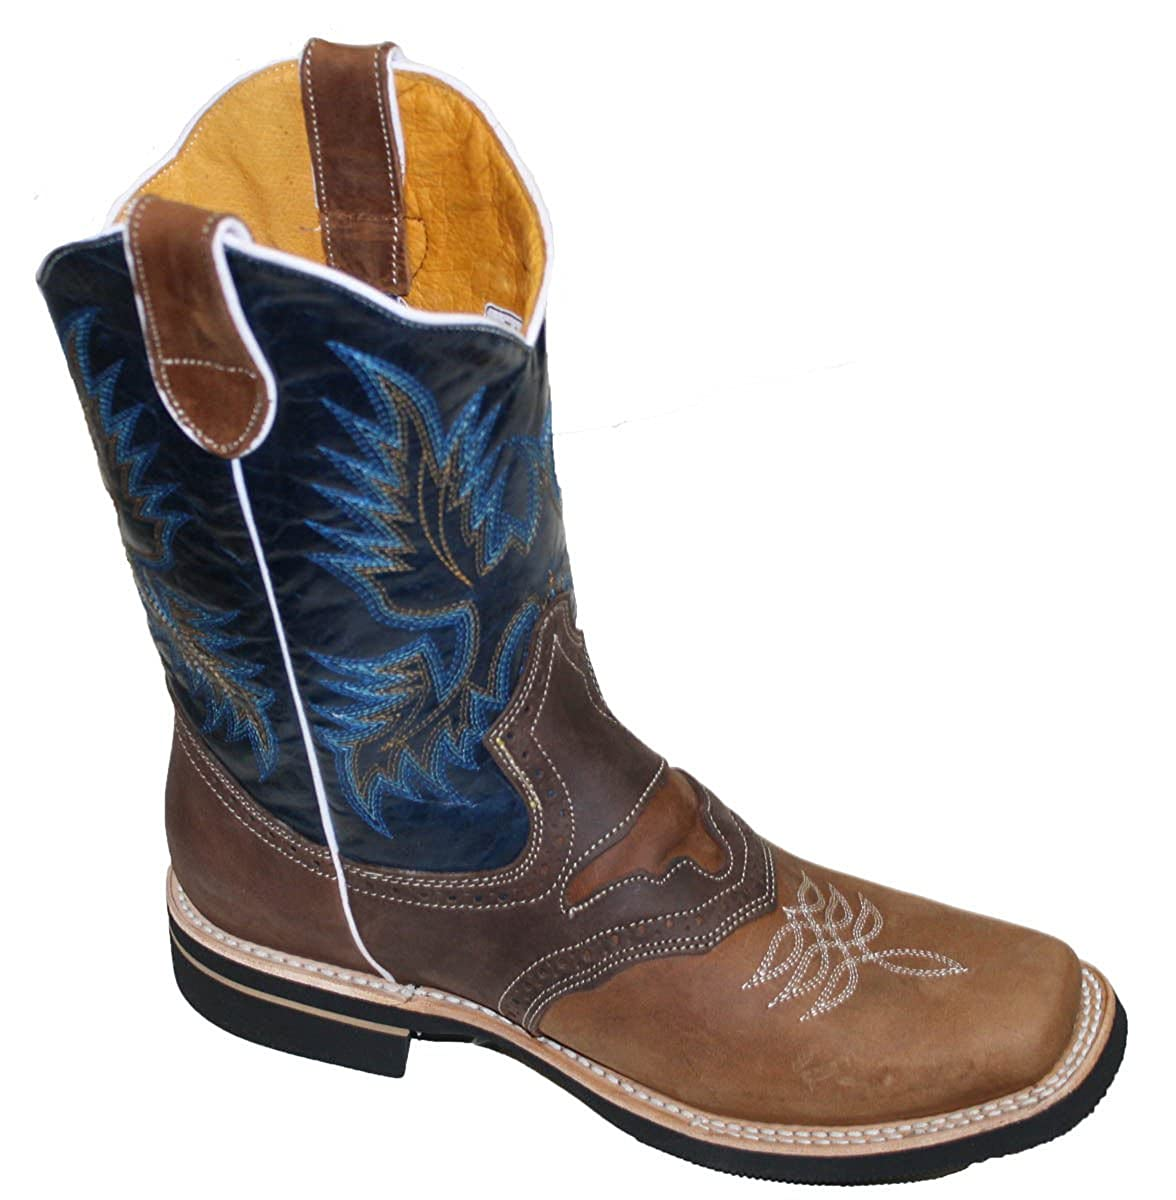 ebdbf15d2ca Genuine Leather Cowboy Boots - Fashion Boots